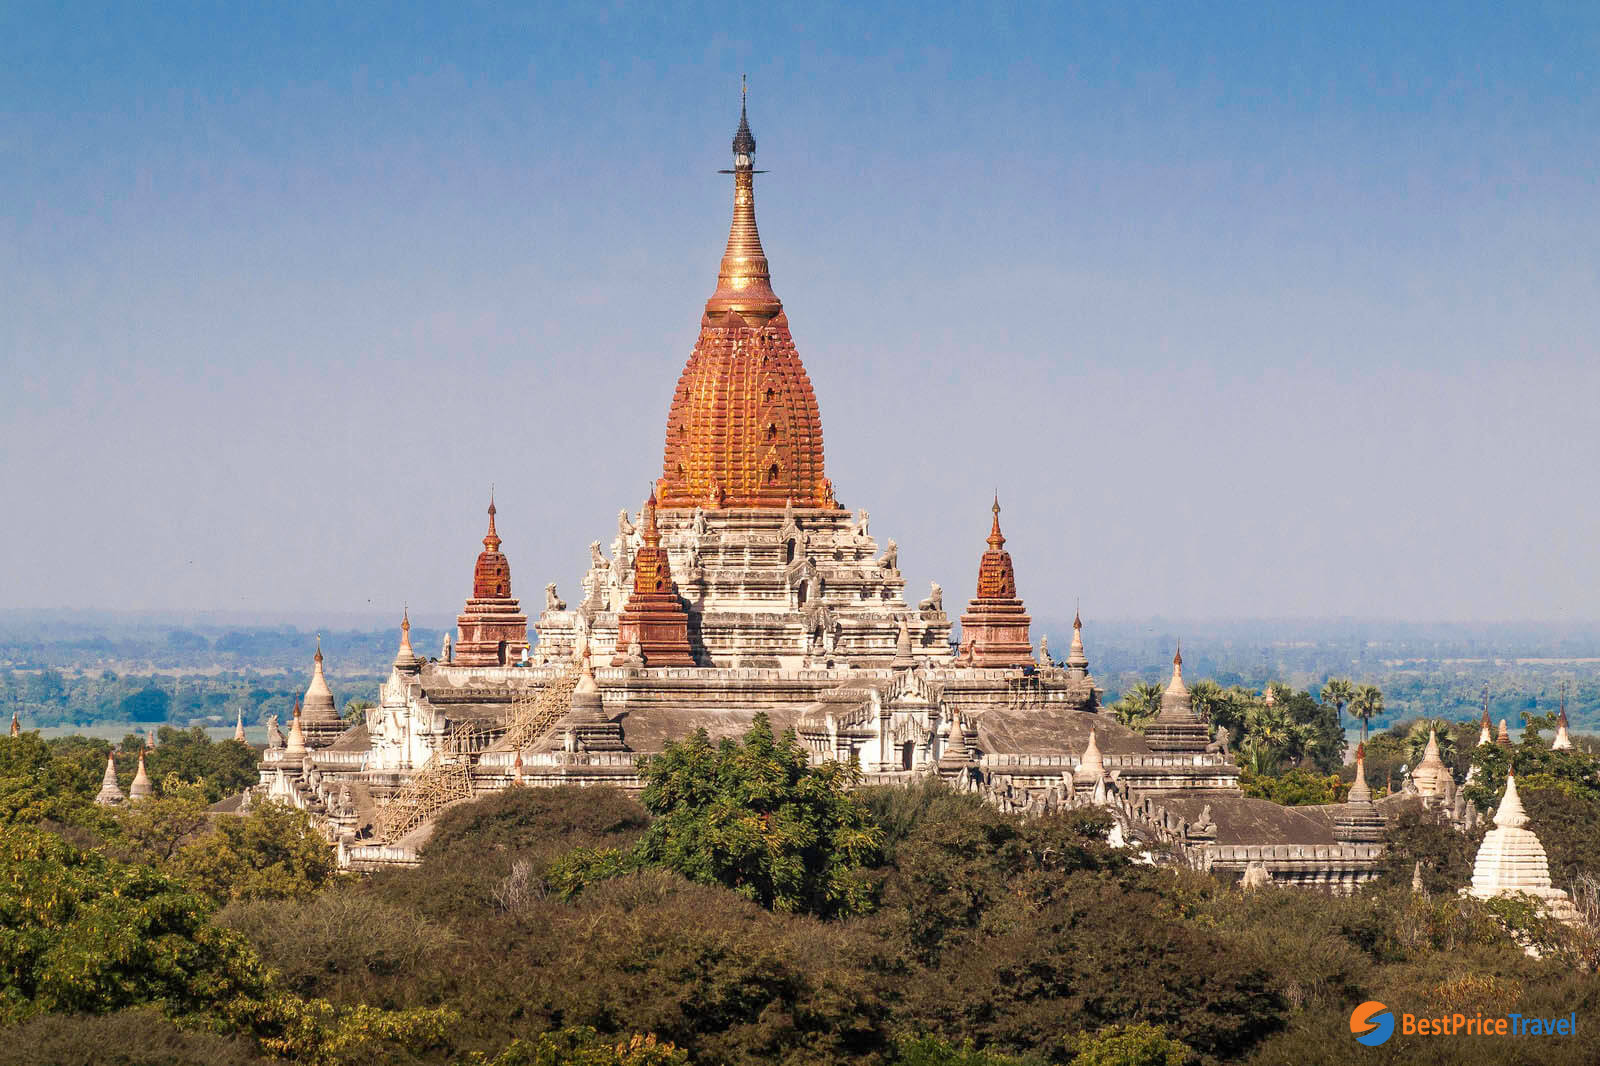 Ananda Temple is another must-see attraction in Bagan